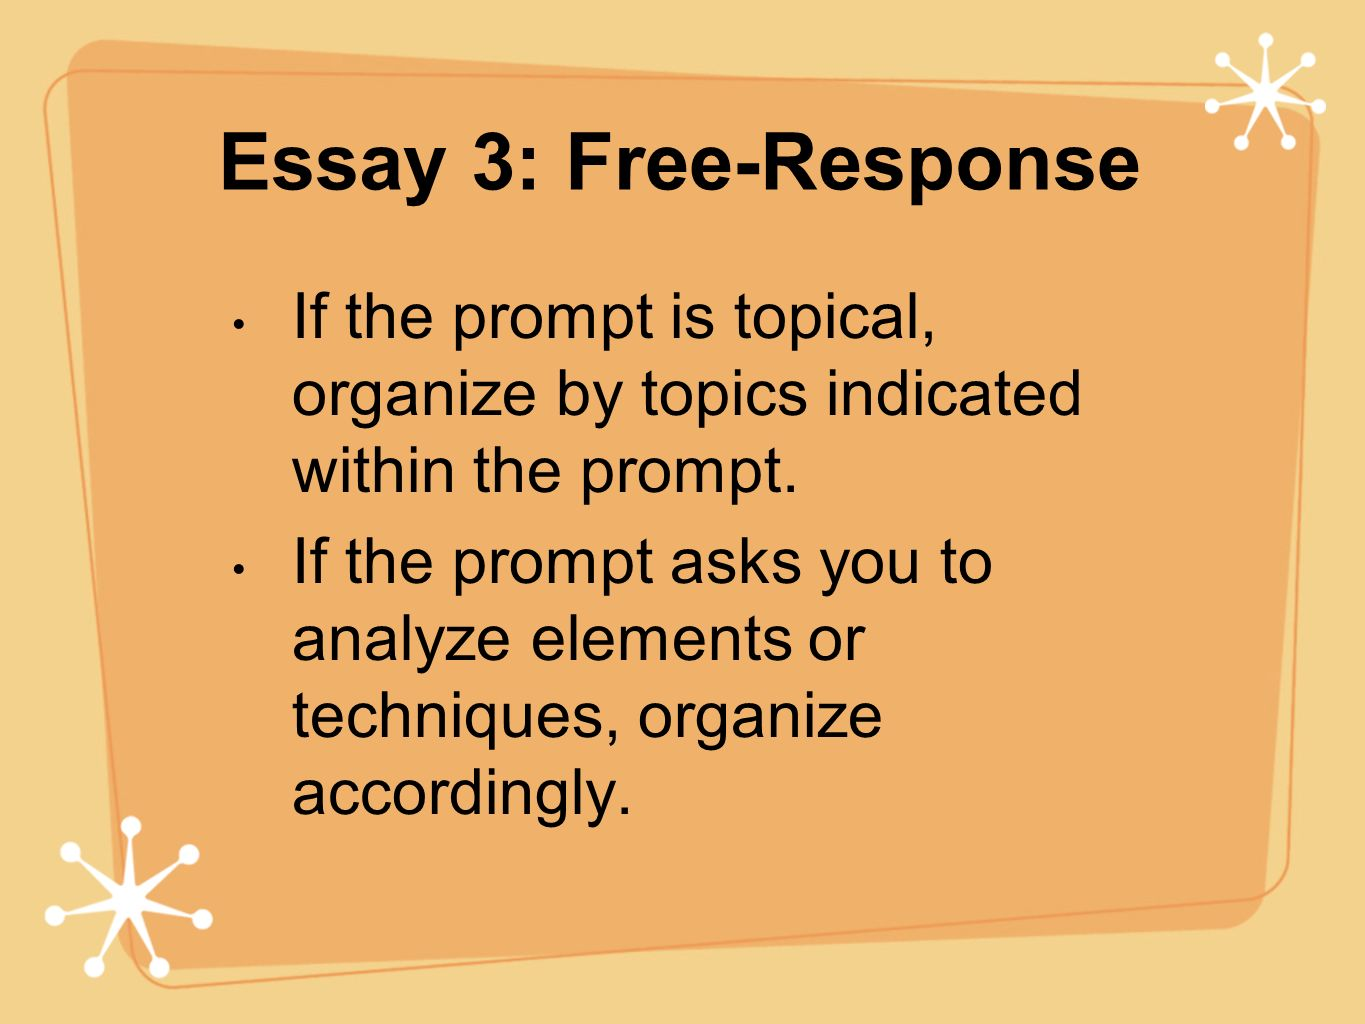 Essay 3: Free-Response If the prompt is topical, organize by topics indicated within the prompt.